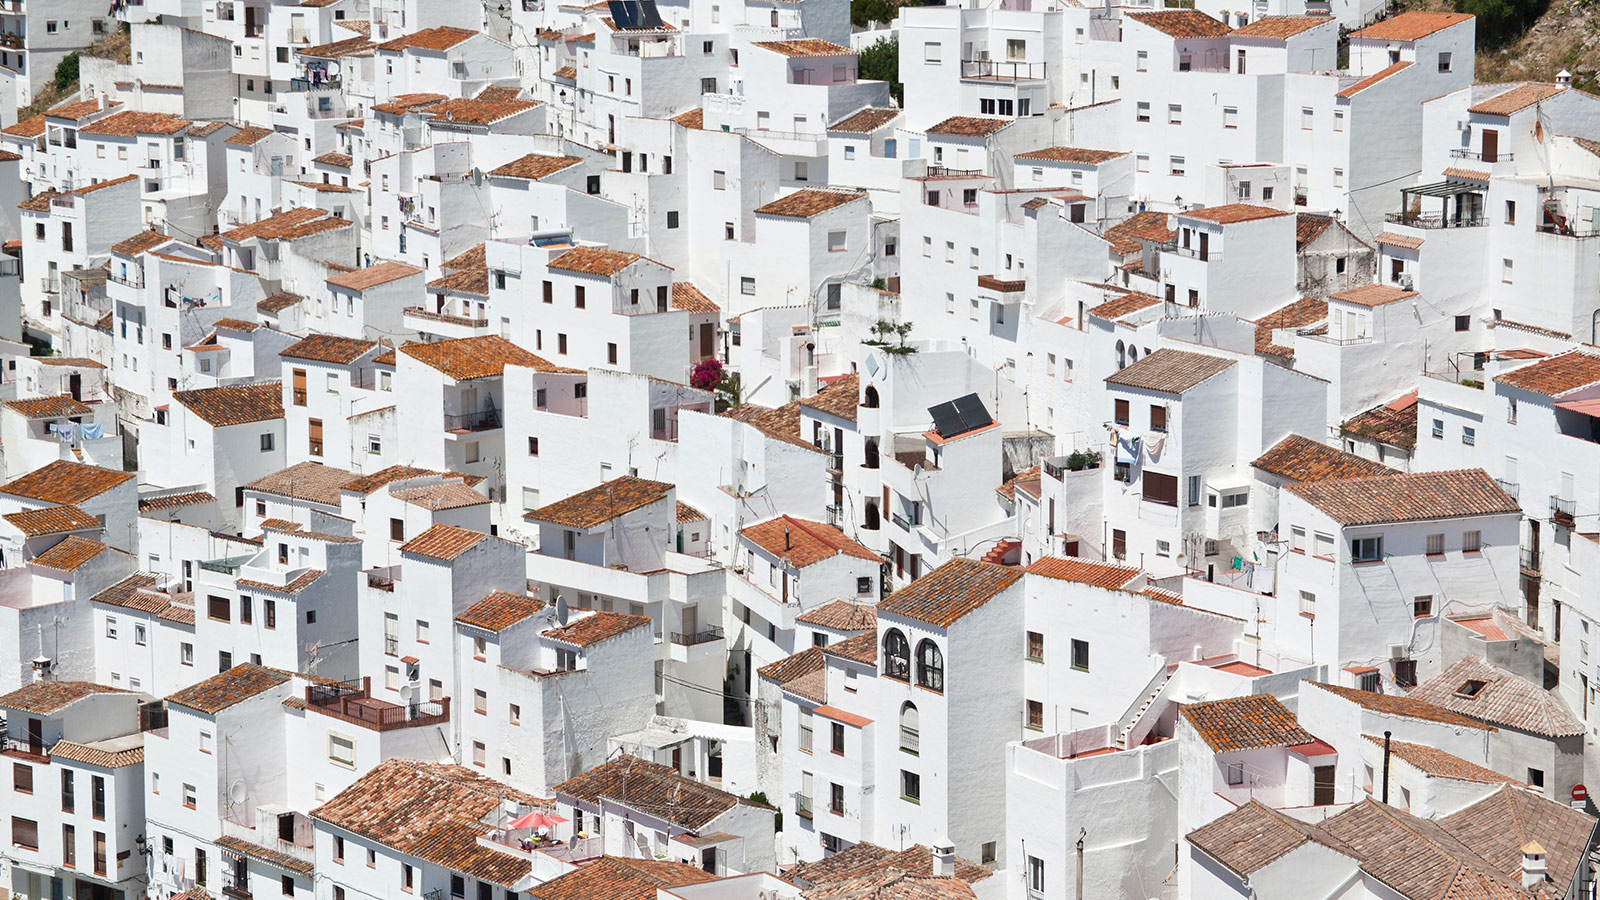 white houses of casares spain